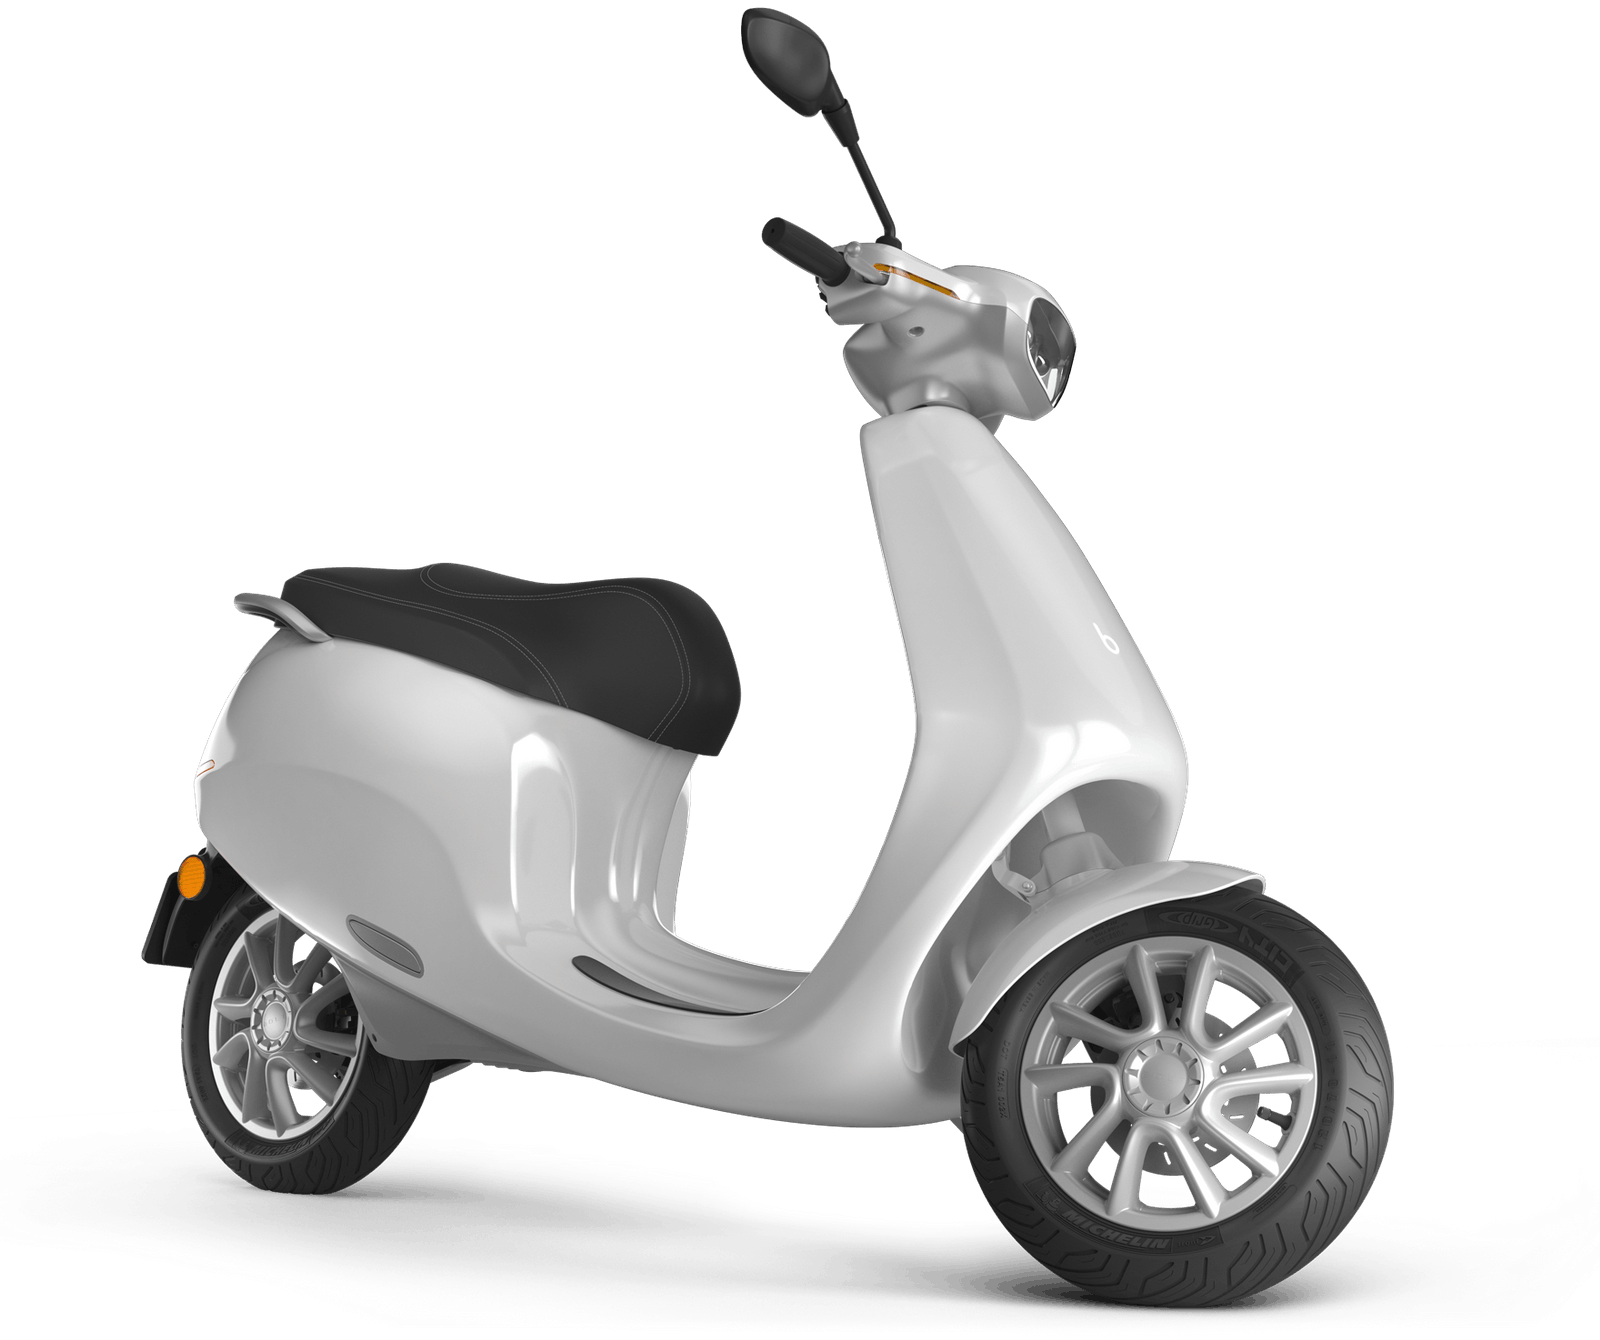 the appscooter basically tech loaded two wheel tesla #37111